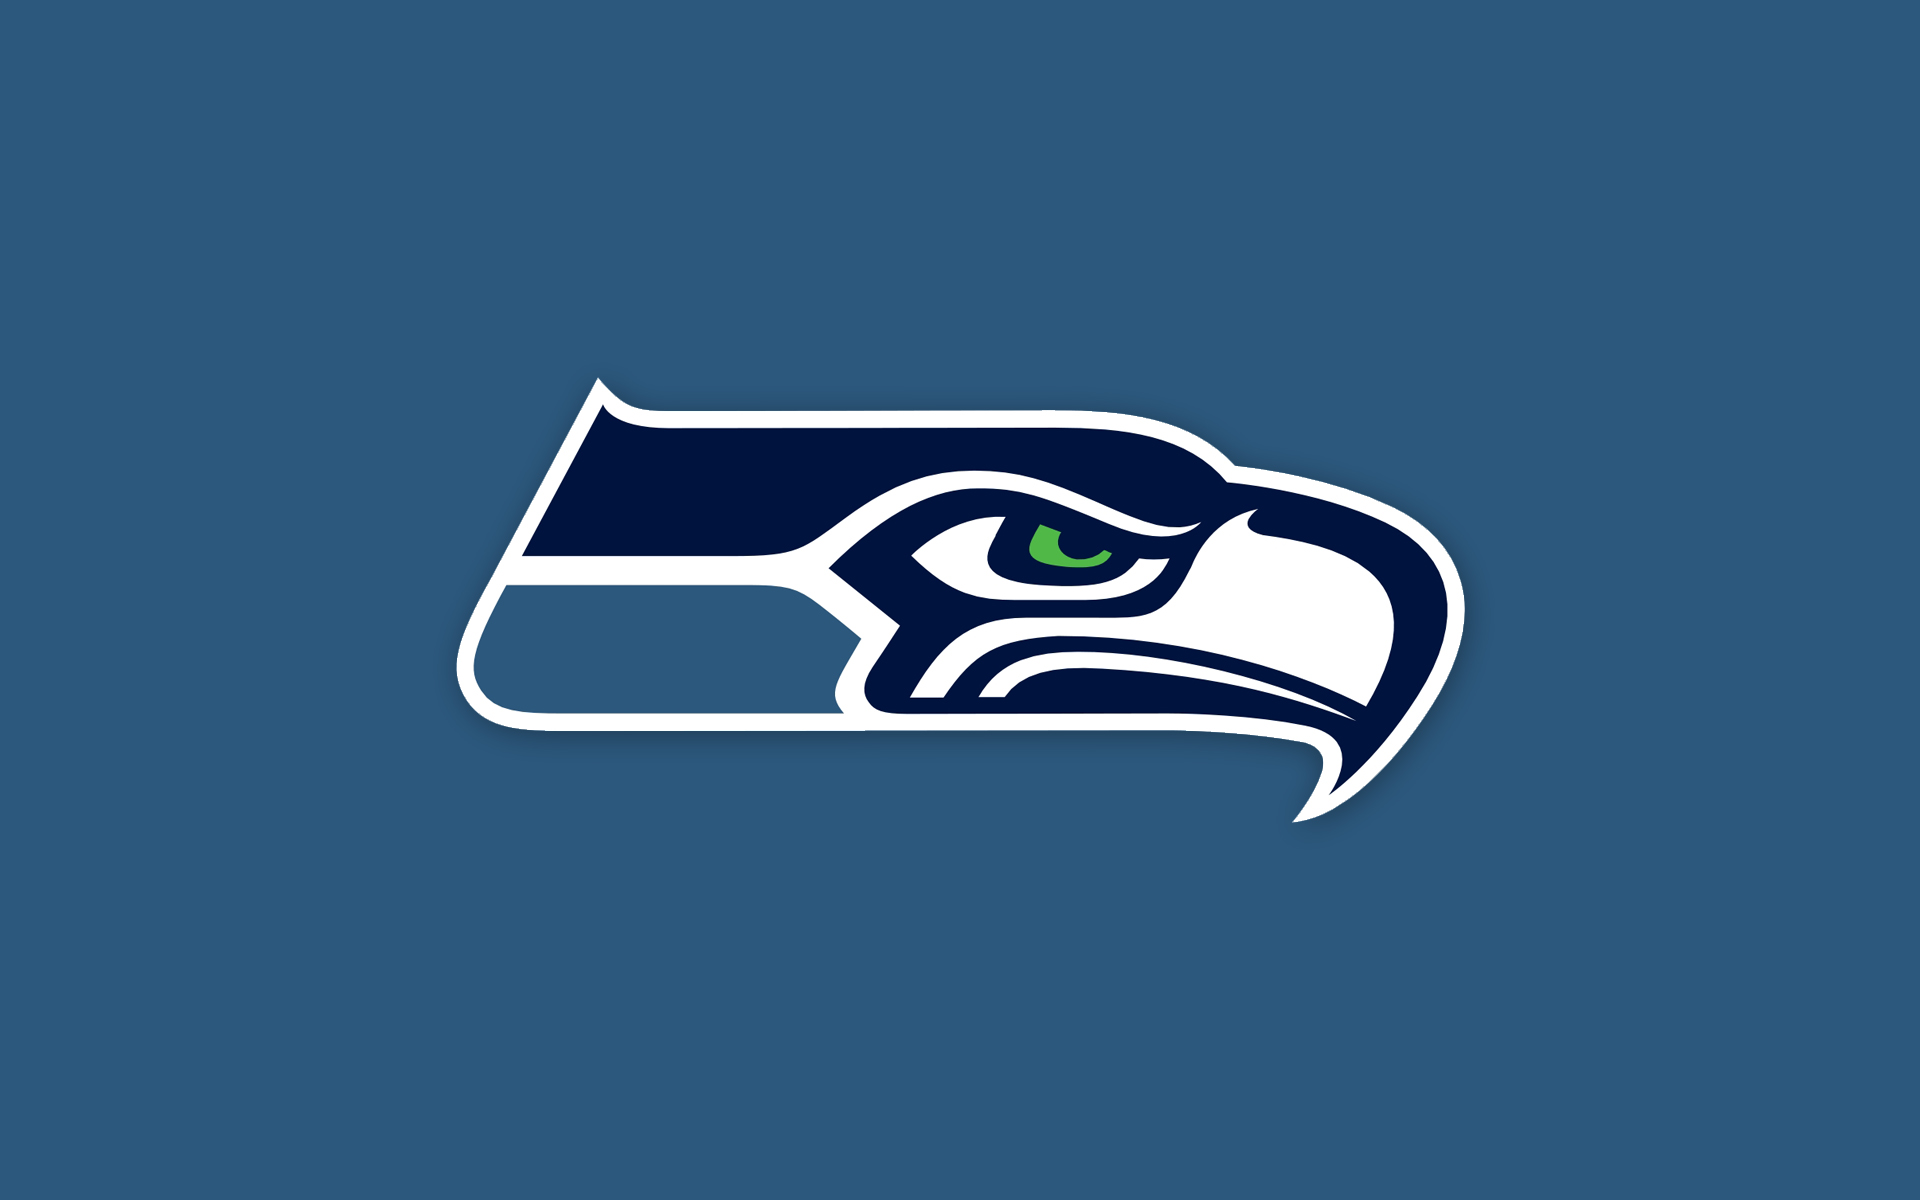 Seattle Seahawks Wallpaper 1920x1080: Seattle Seahawks HD Wallpaper